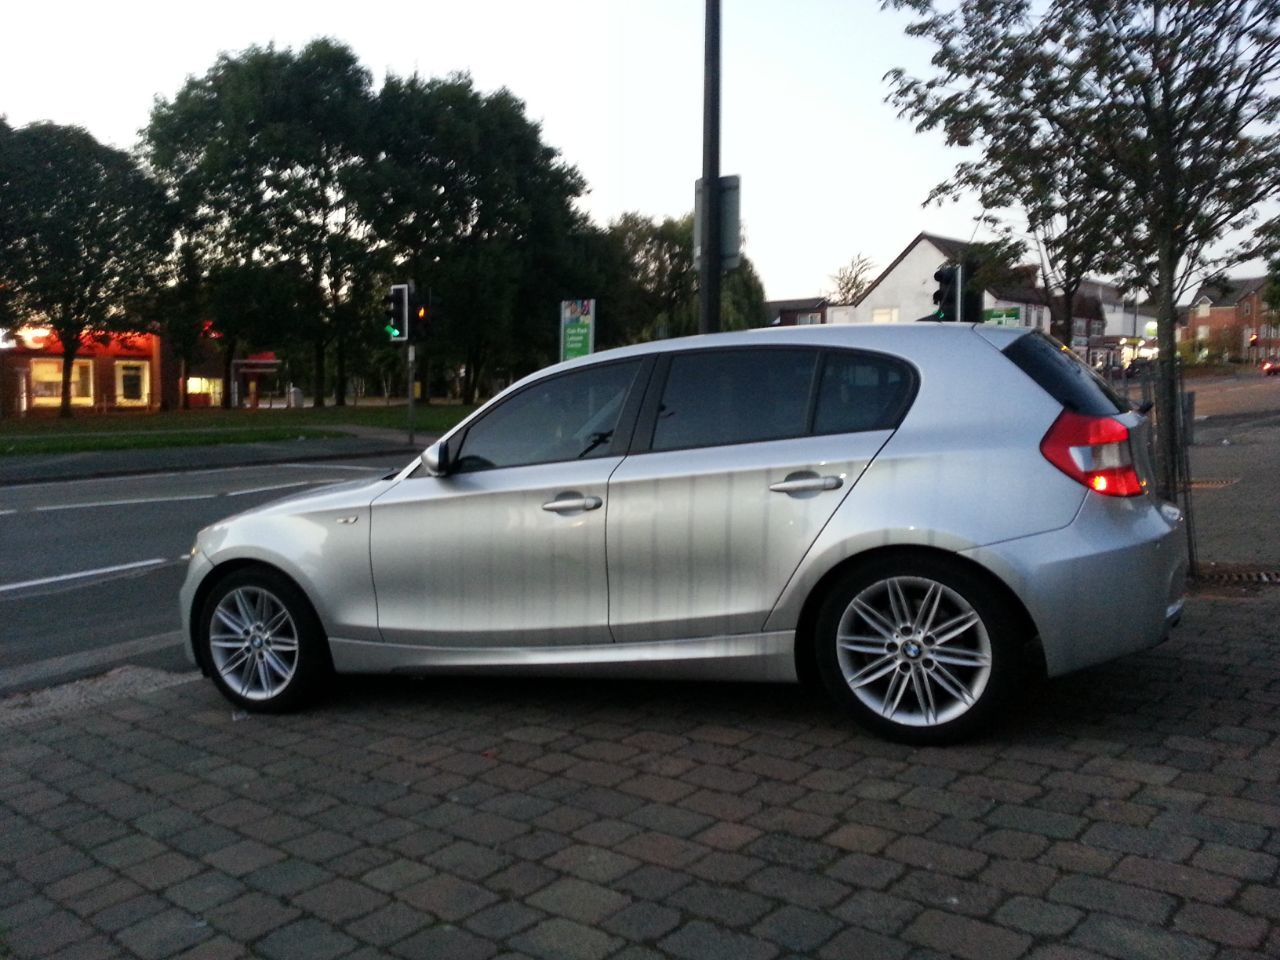 used bmw 1 series and second hand bmw 1 series in west midlands. Black Bedroom Furniture Sets. Home Design Ideas